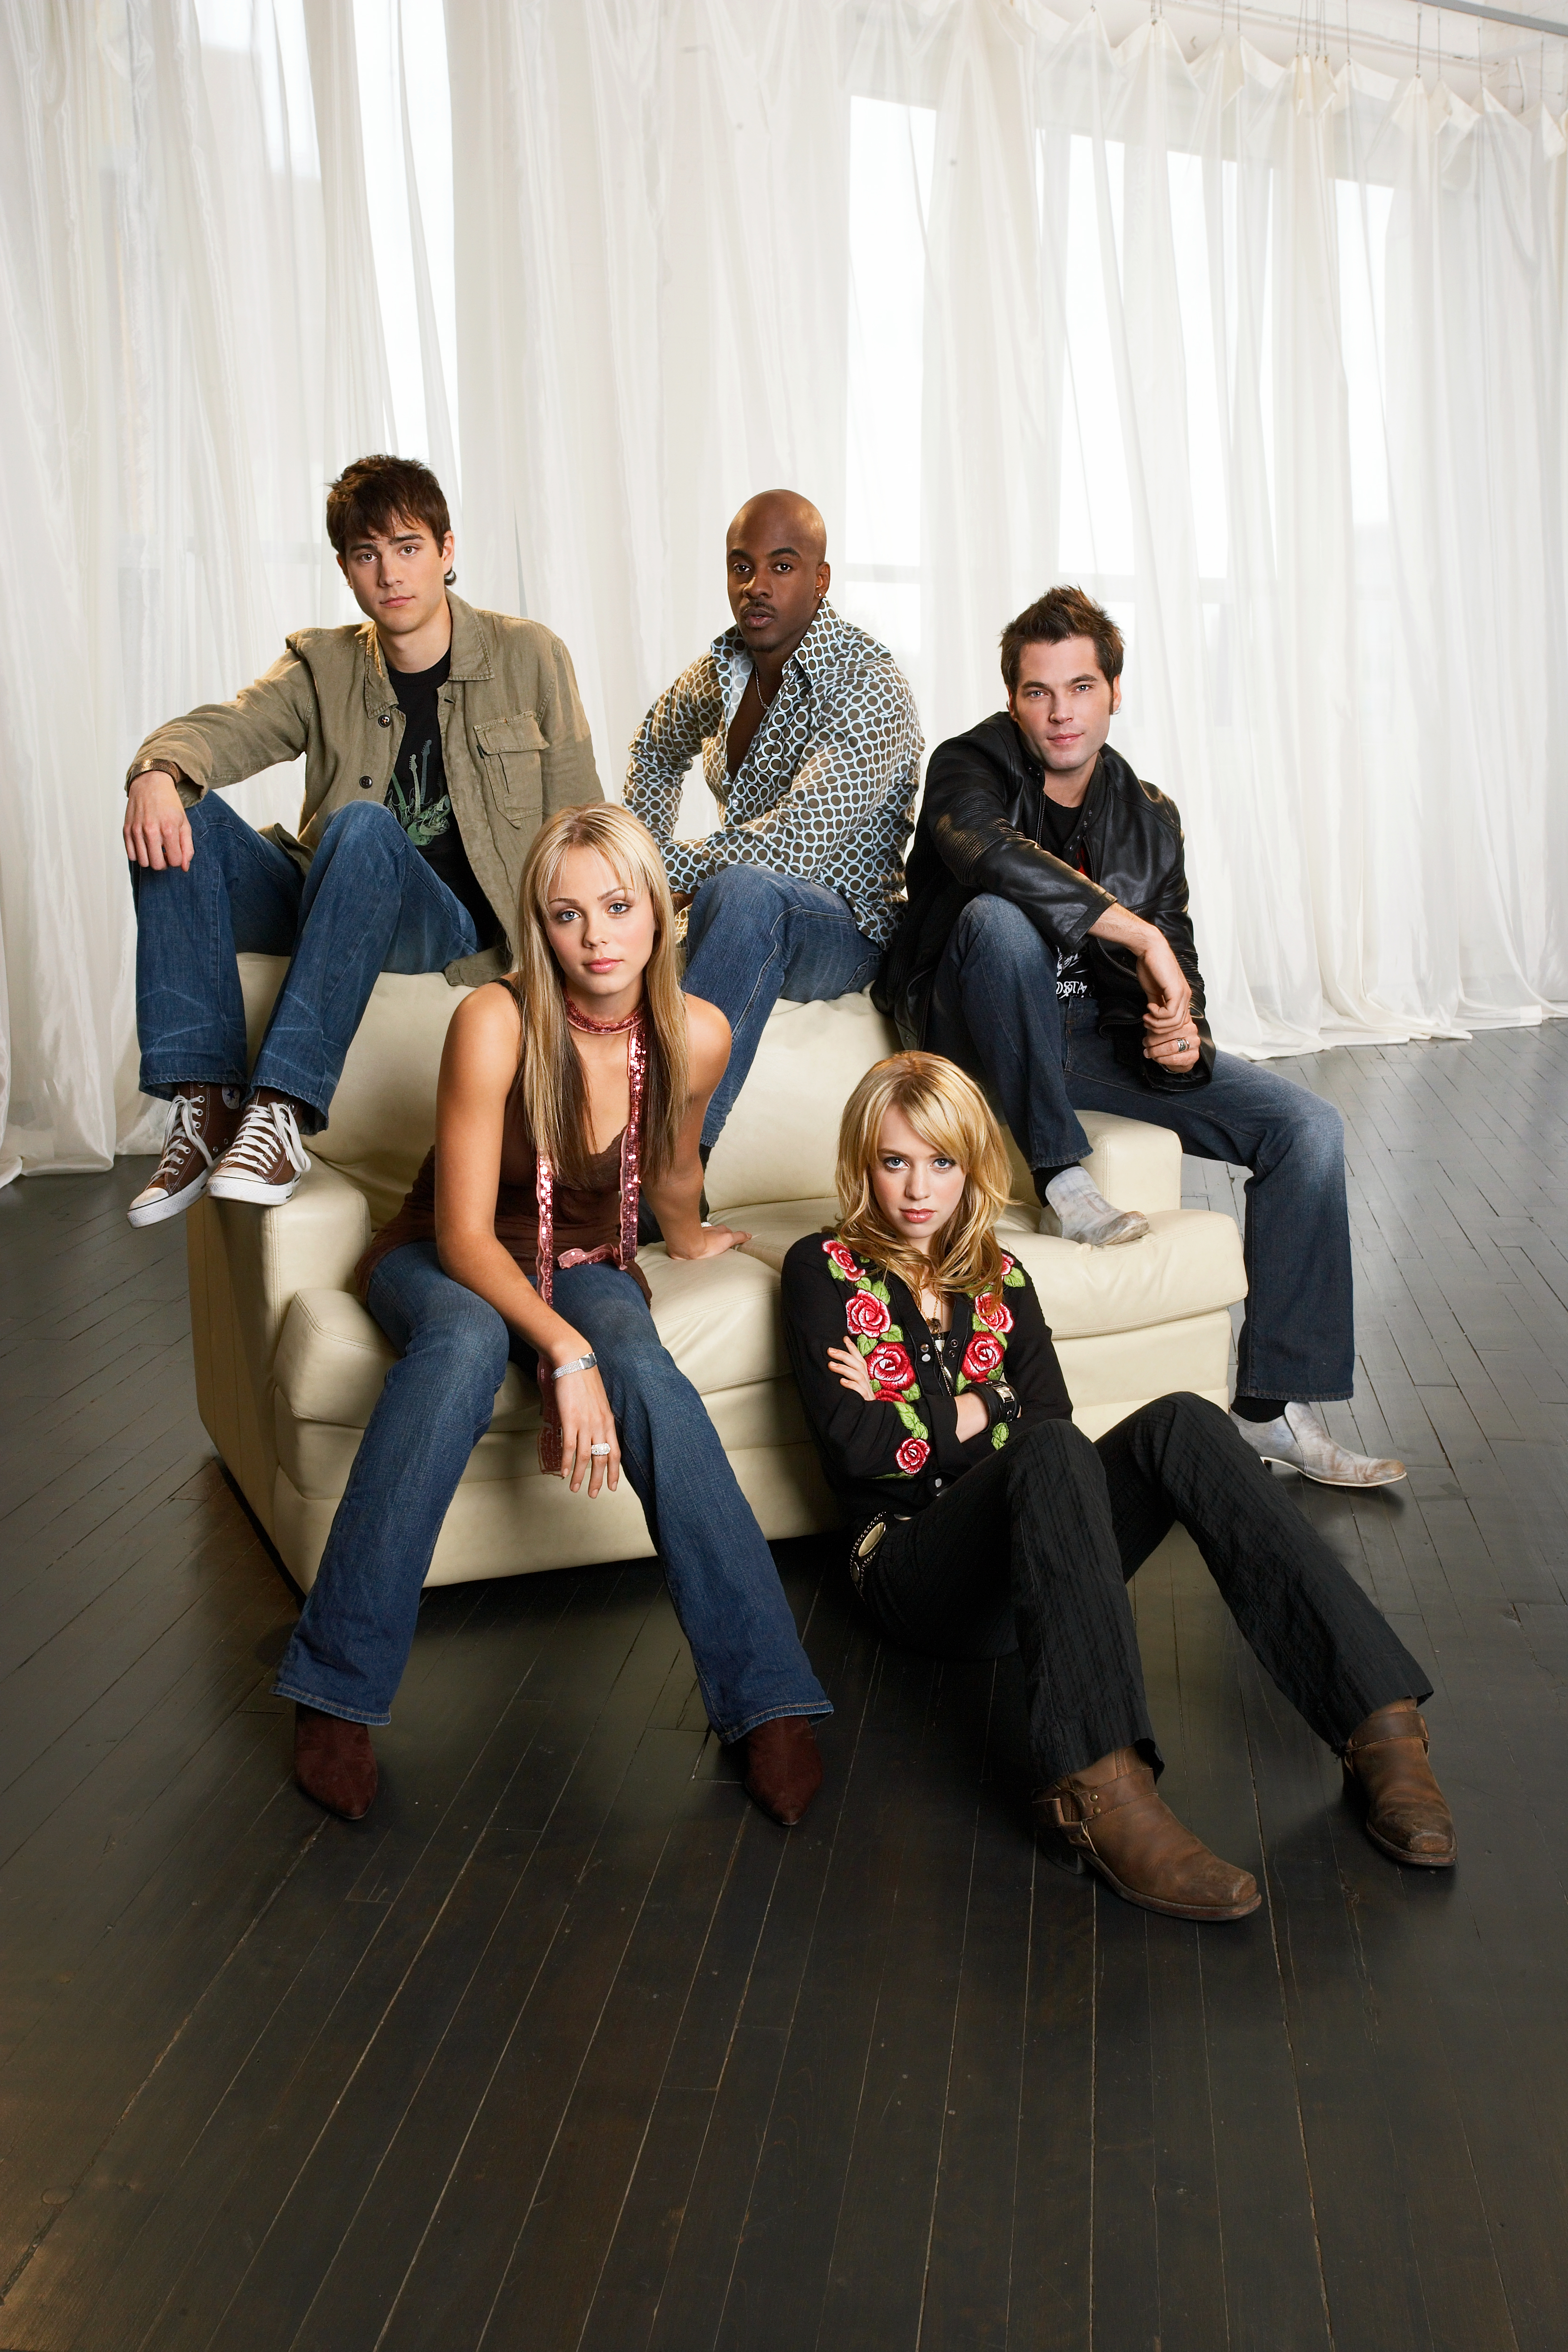 alexz-johnson-and-other-cast-members-of-instant-star